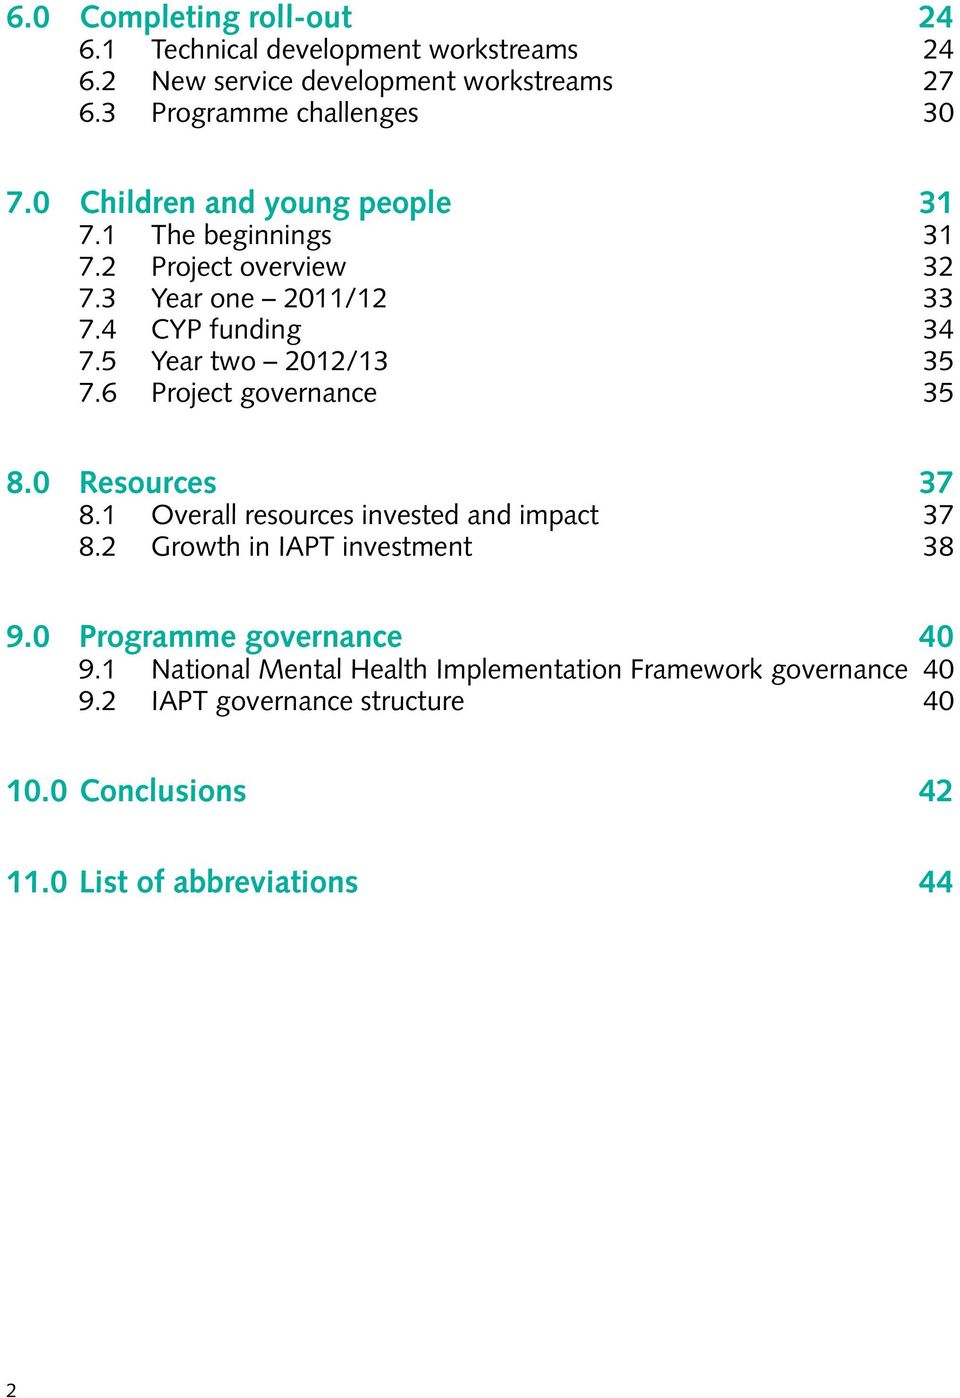 6 Project governance 35 8.0 Resources 37 8.1 Overall resources invested and impact 37 8.2 Growth in IAPT investment 38 9.